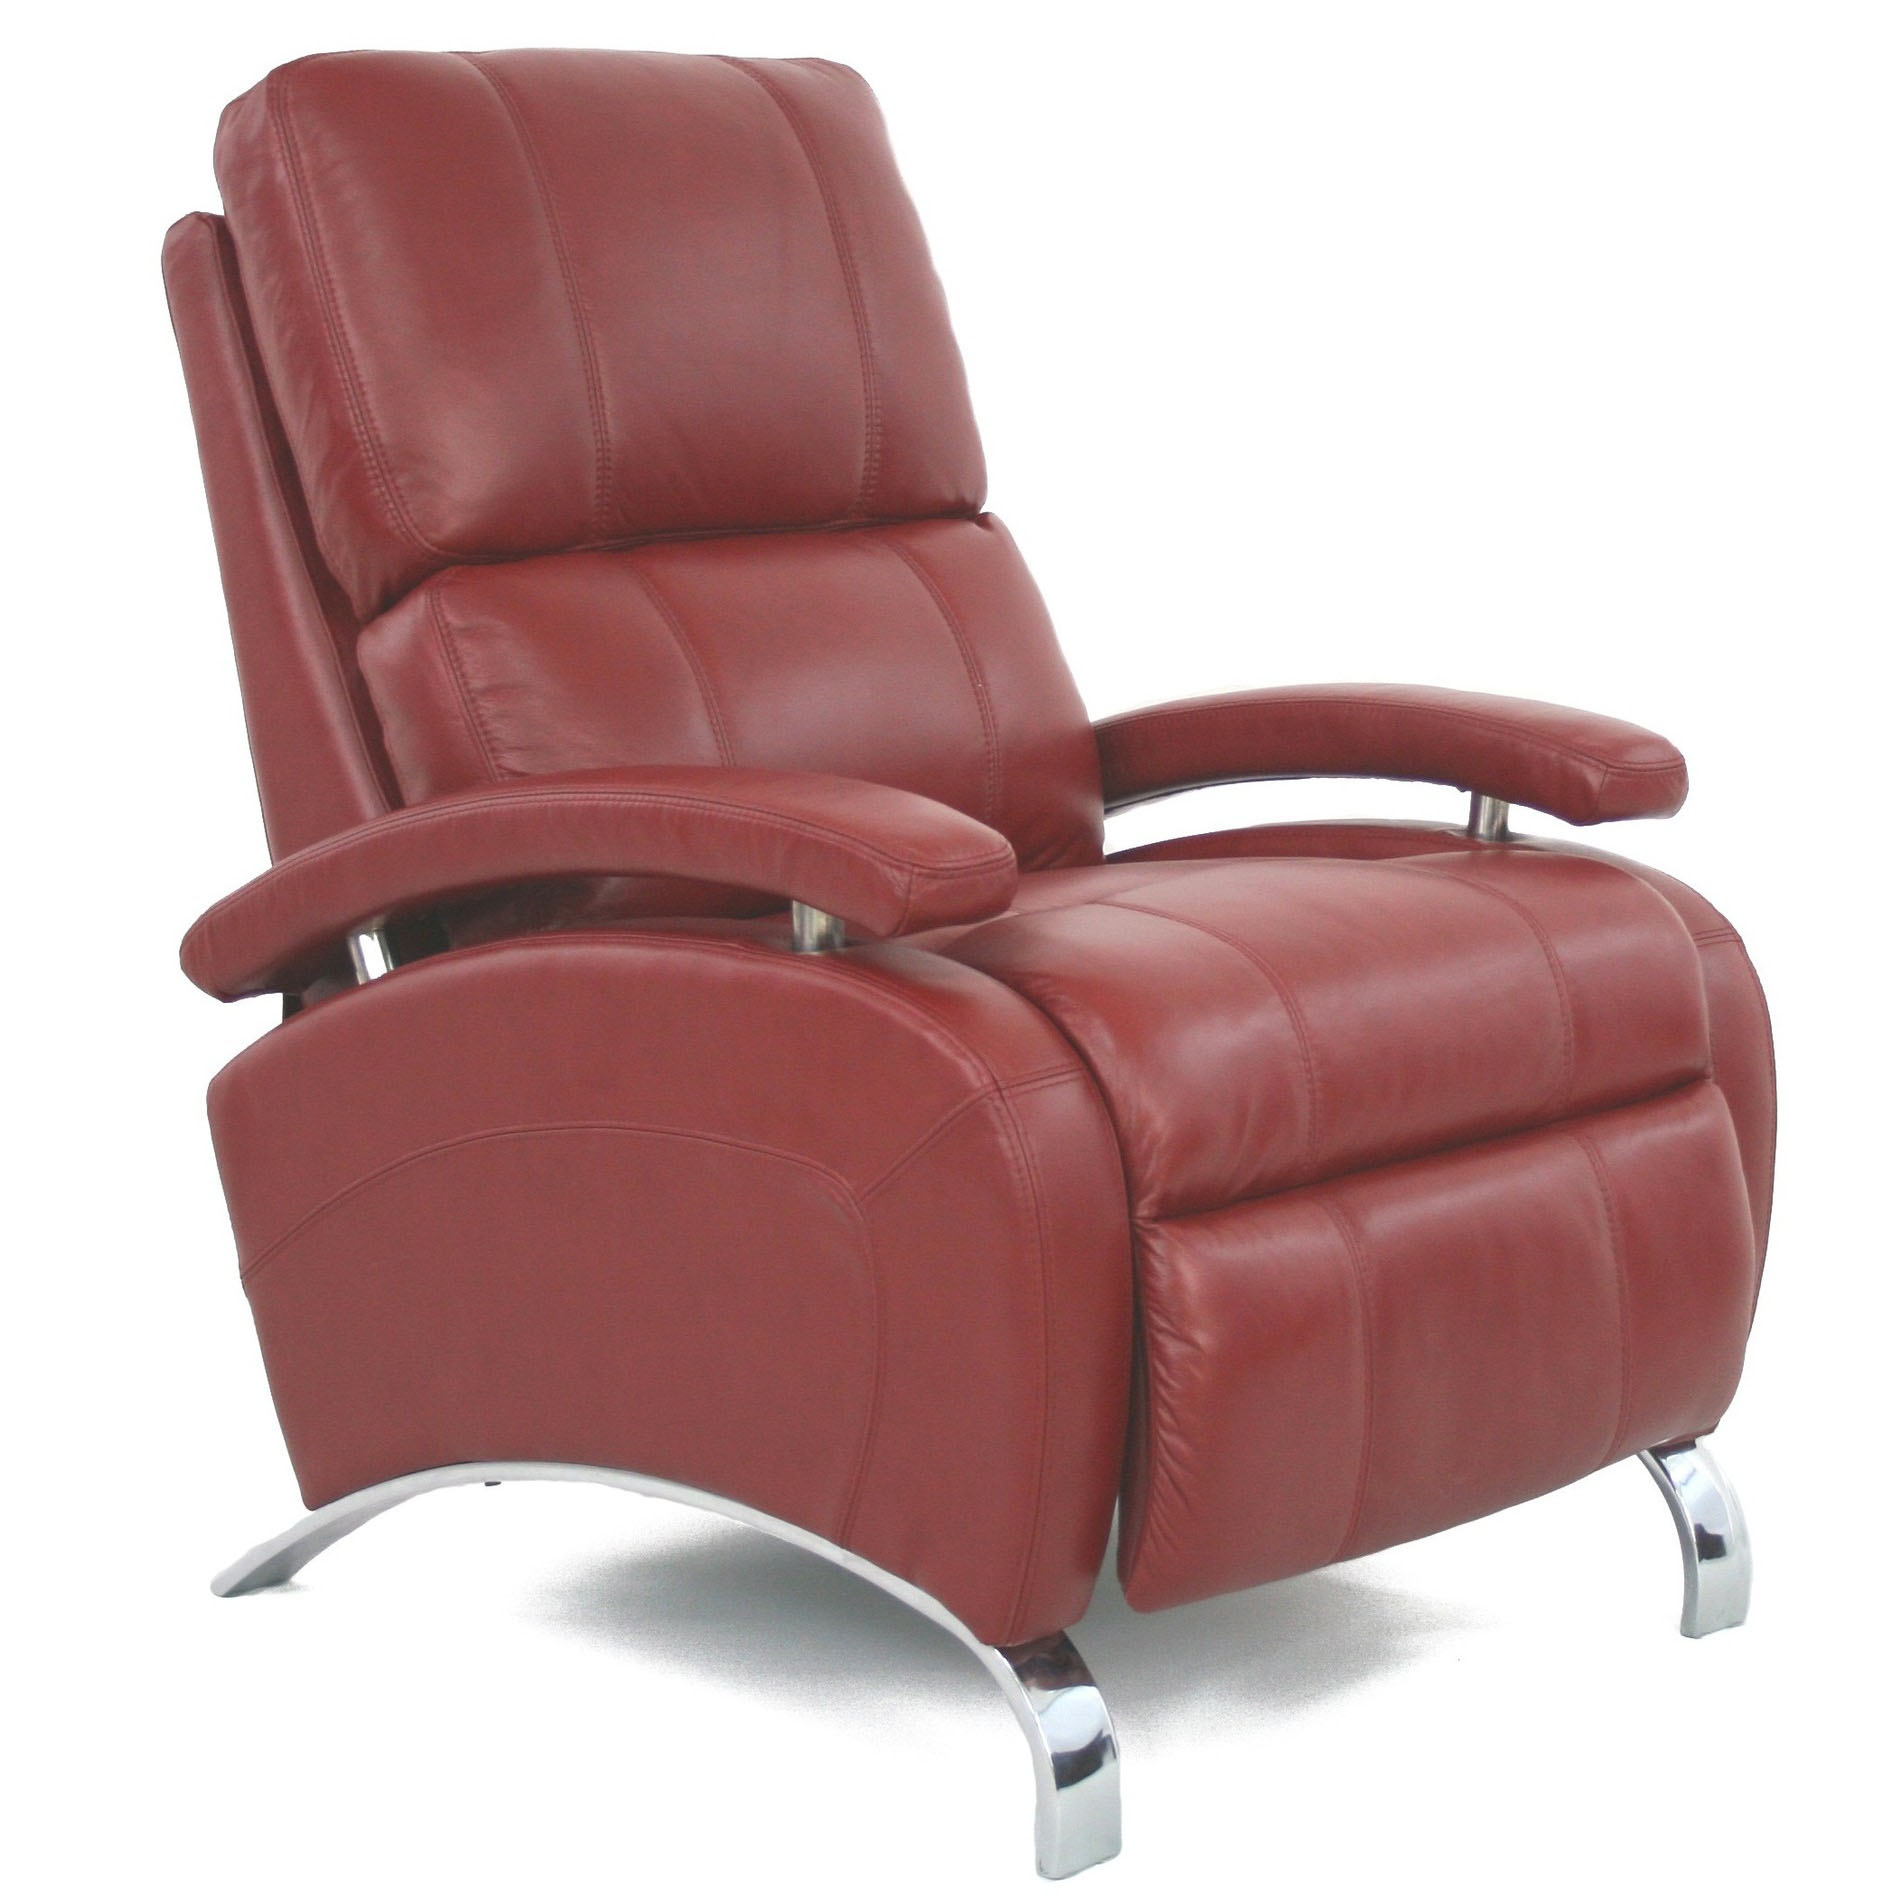 Barcalounger Oracle II Recliner Chair Leather Recliner Chair